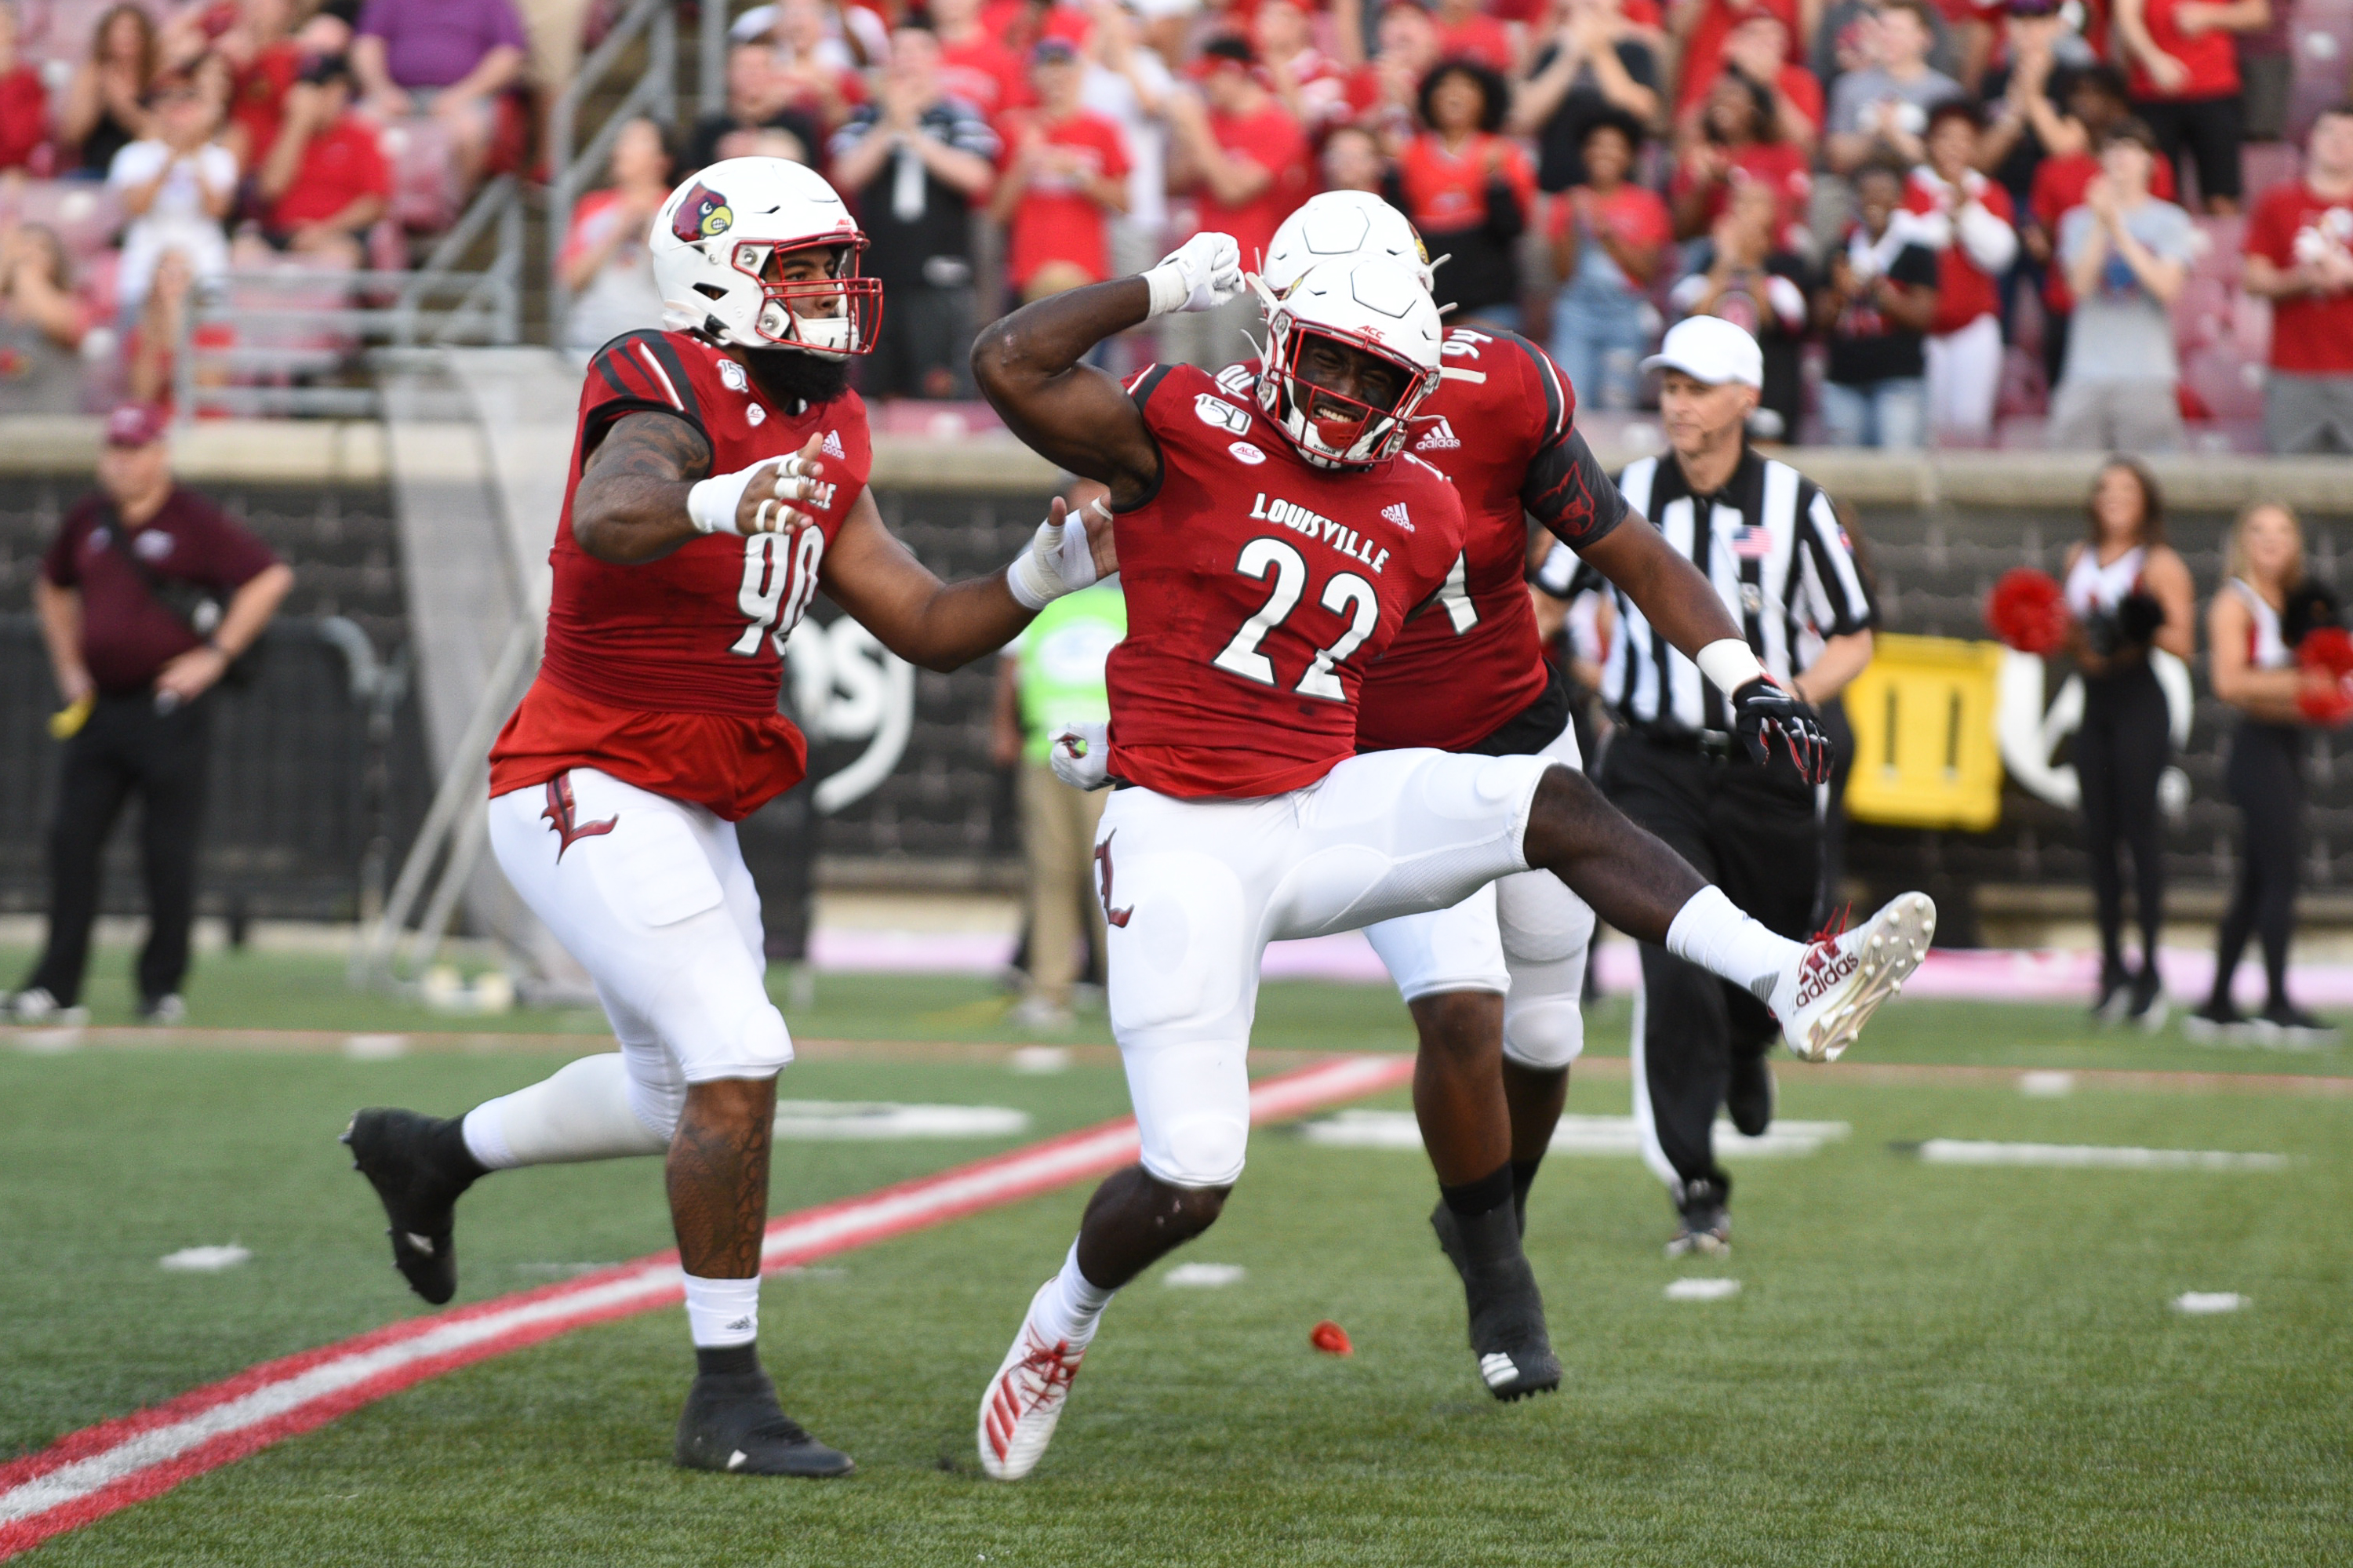 Yasir Abdullah Celebrates a sack in the opening drive of the win over Eastern Kentucky.